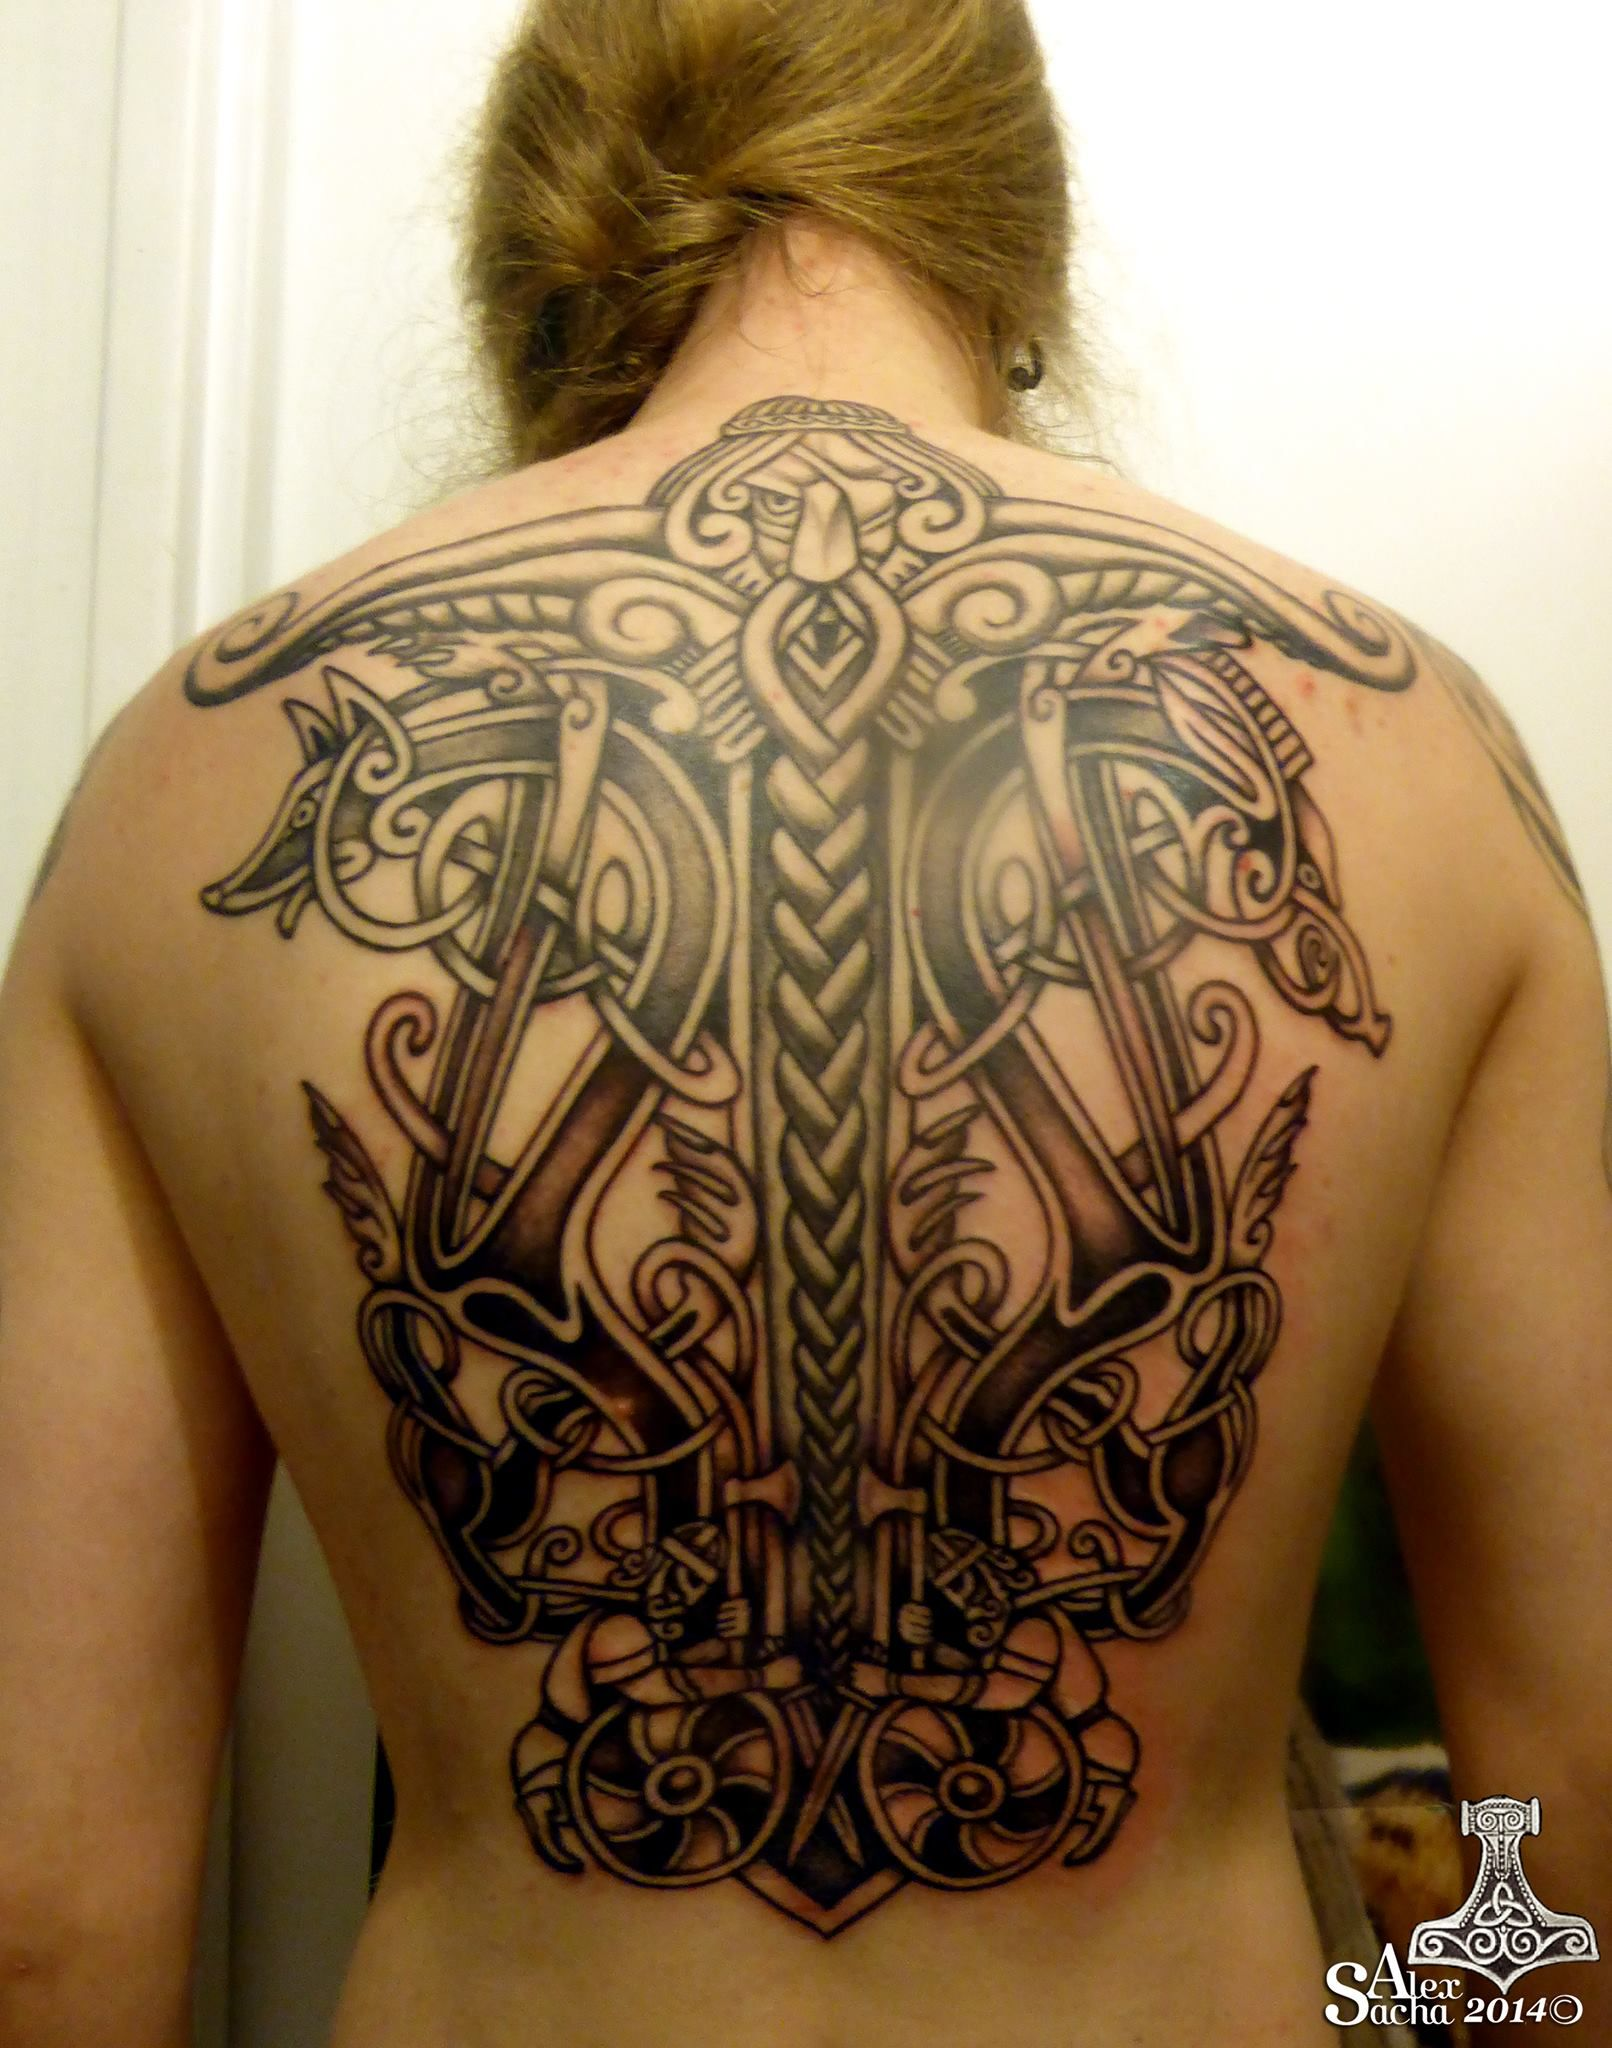 Māori Tattoos History Practice And Meanings: Pin By Clyde Hays On Heathen Tattoo Ideas